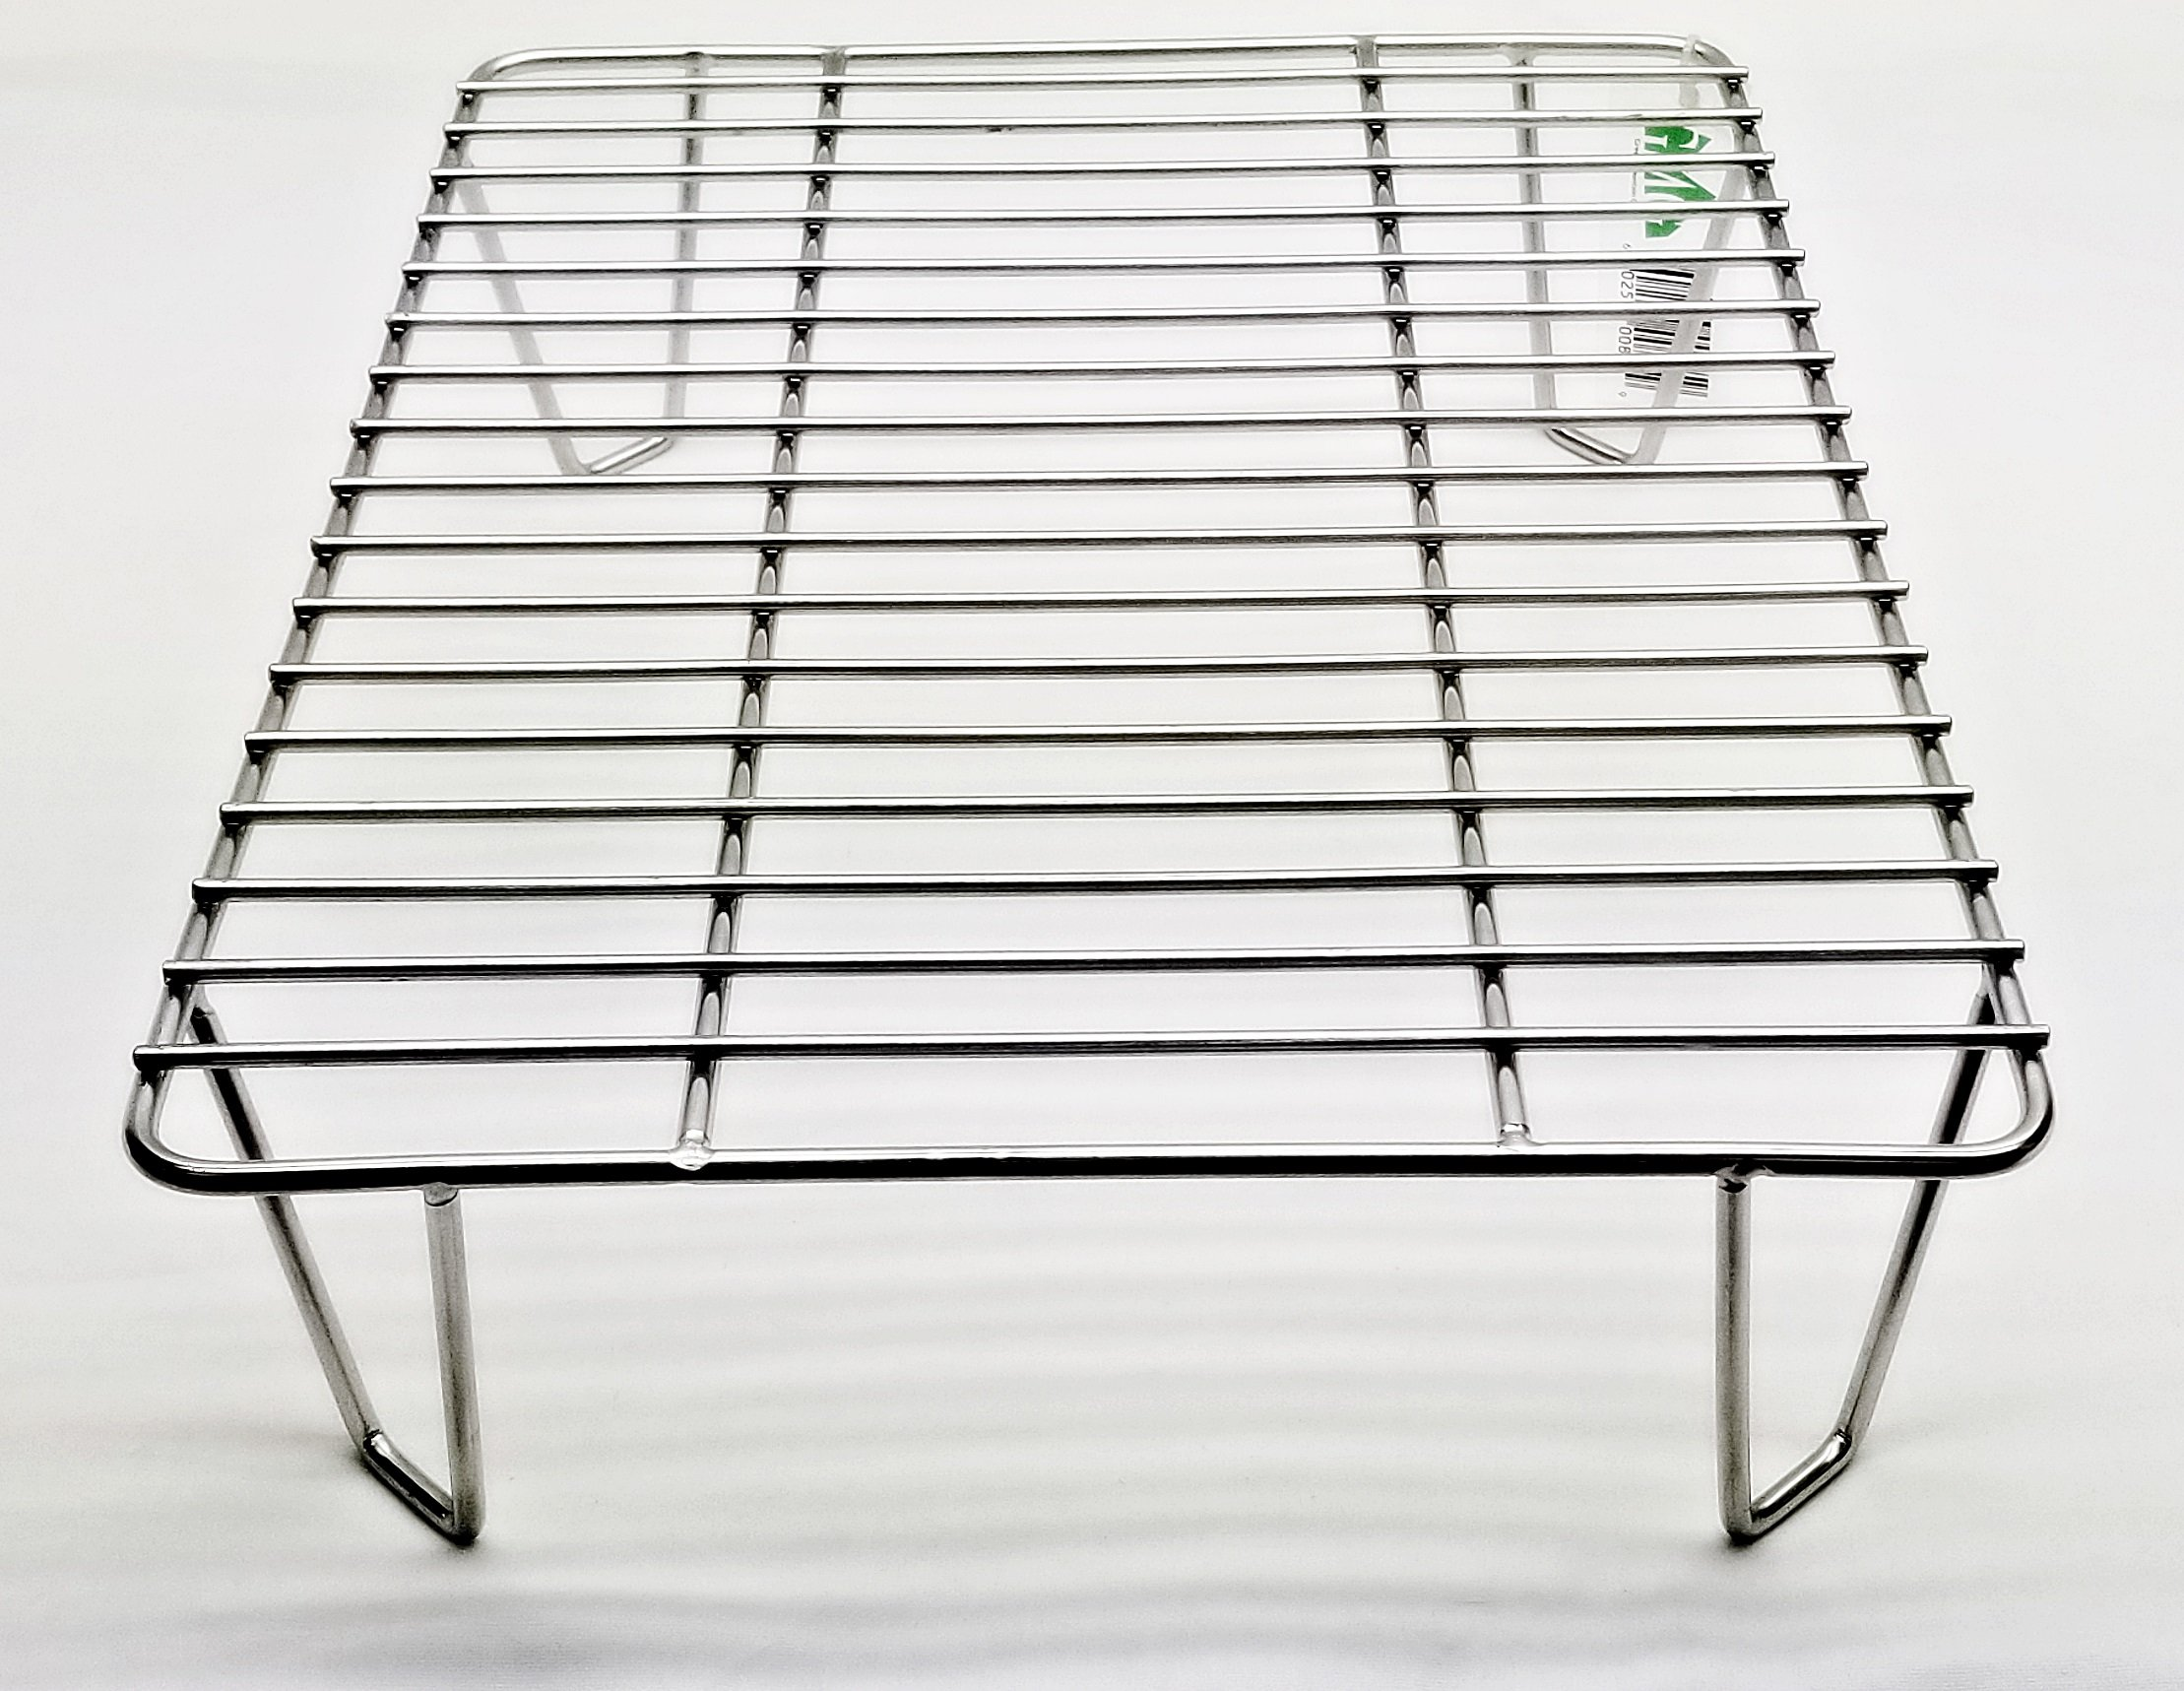 Green Mountain Grill GMG-6016 Upper Rack For Davy Crockett Pellet Grill by Green Mountain Grills